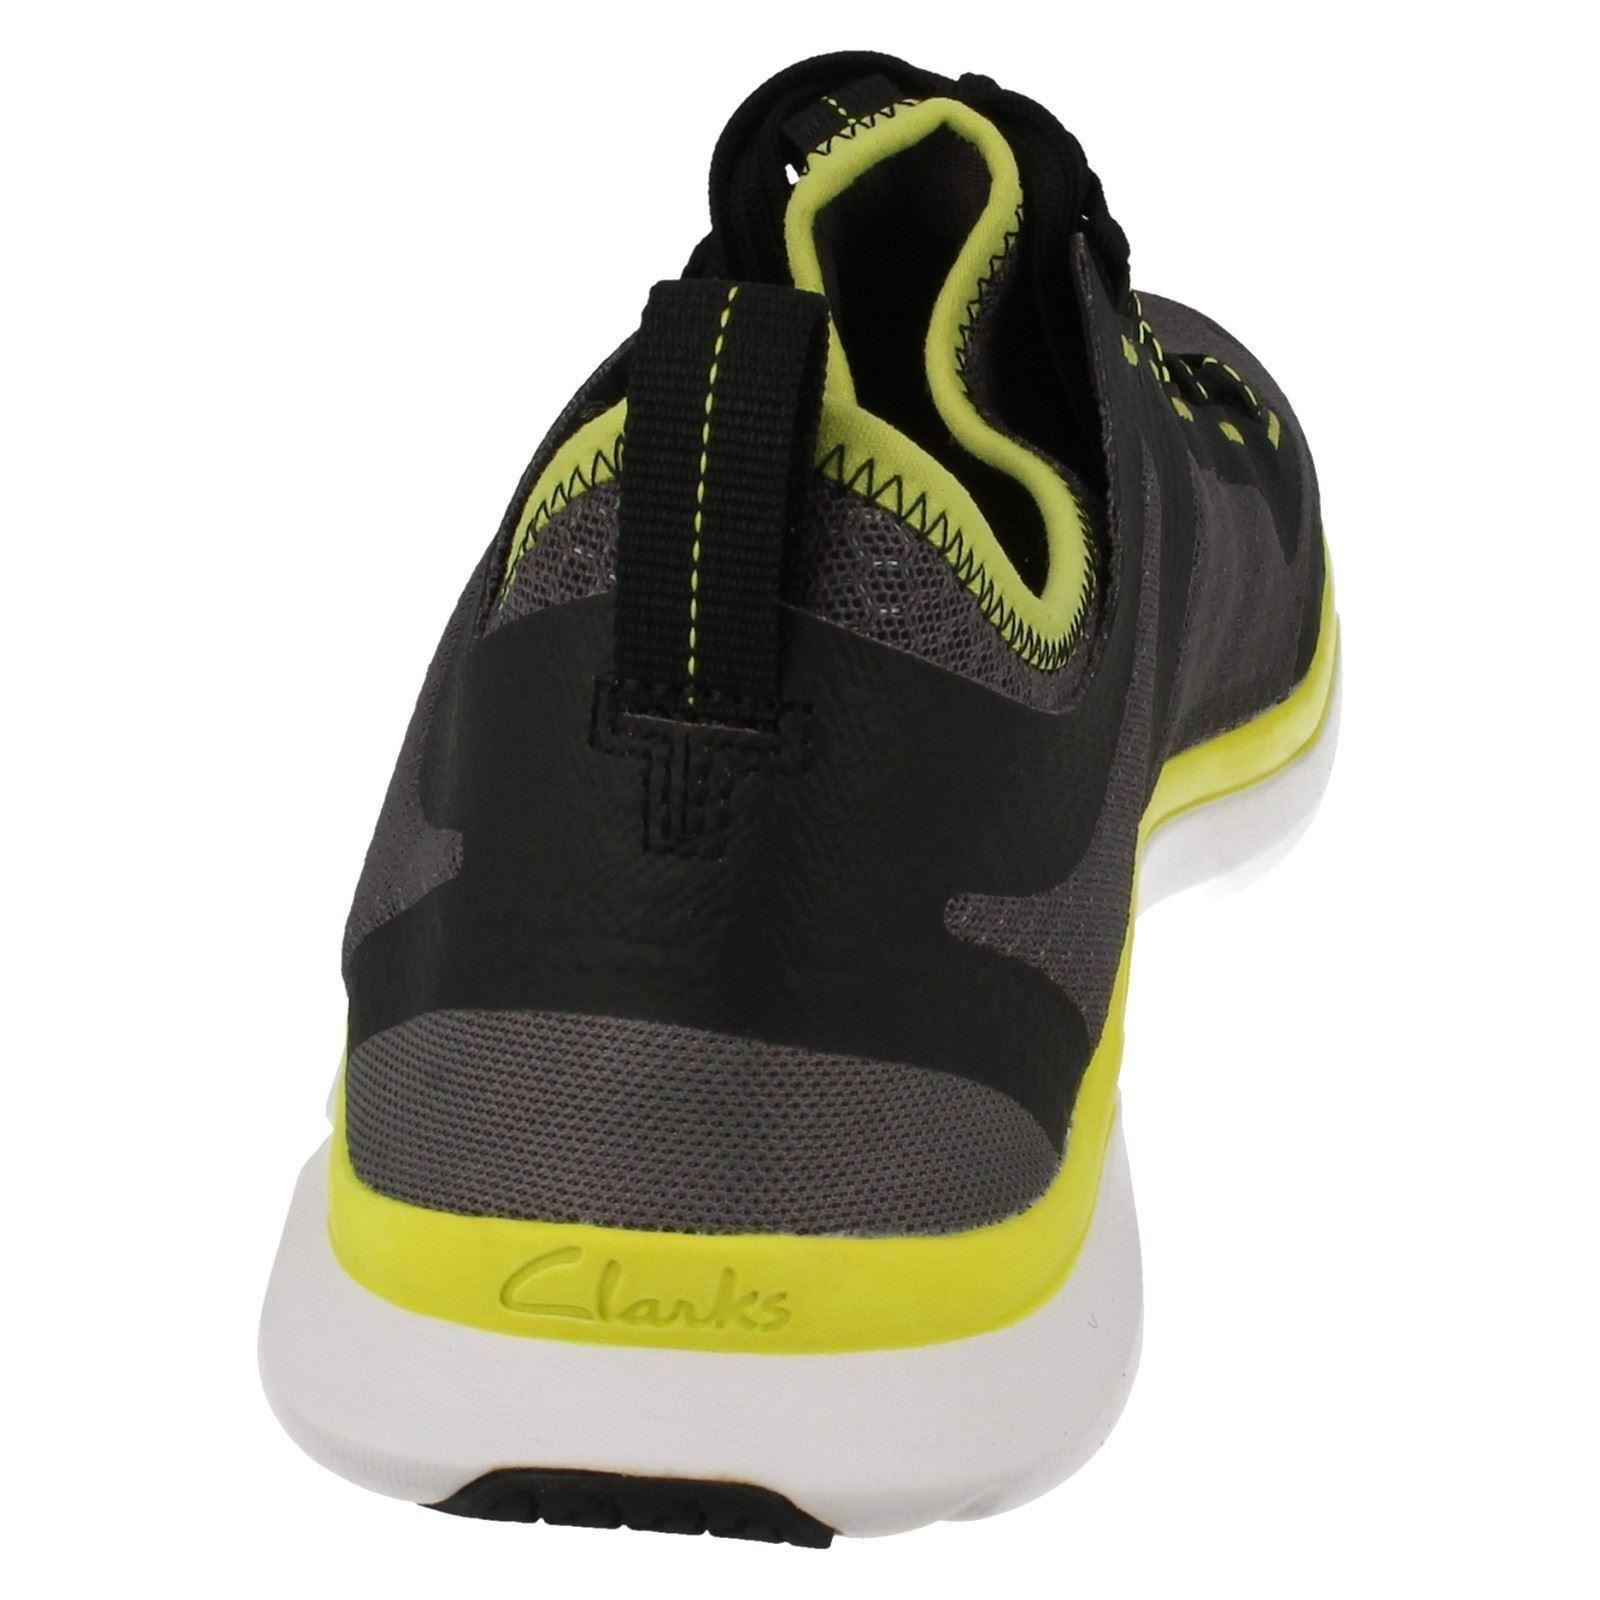 Mens-Clarks-Triken-Active-Casual-Trainers thumbnail 5